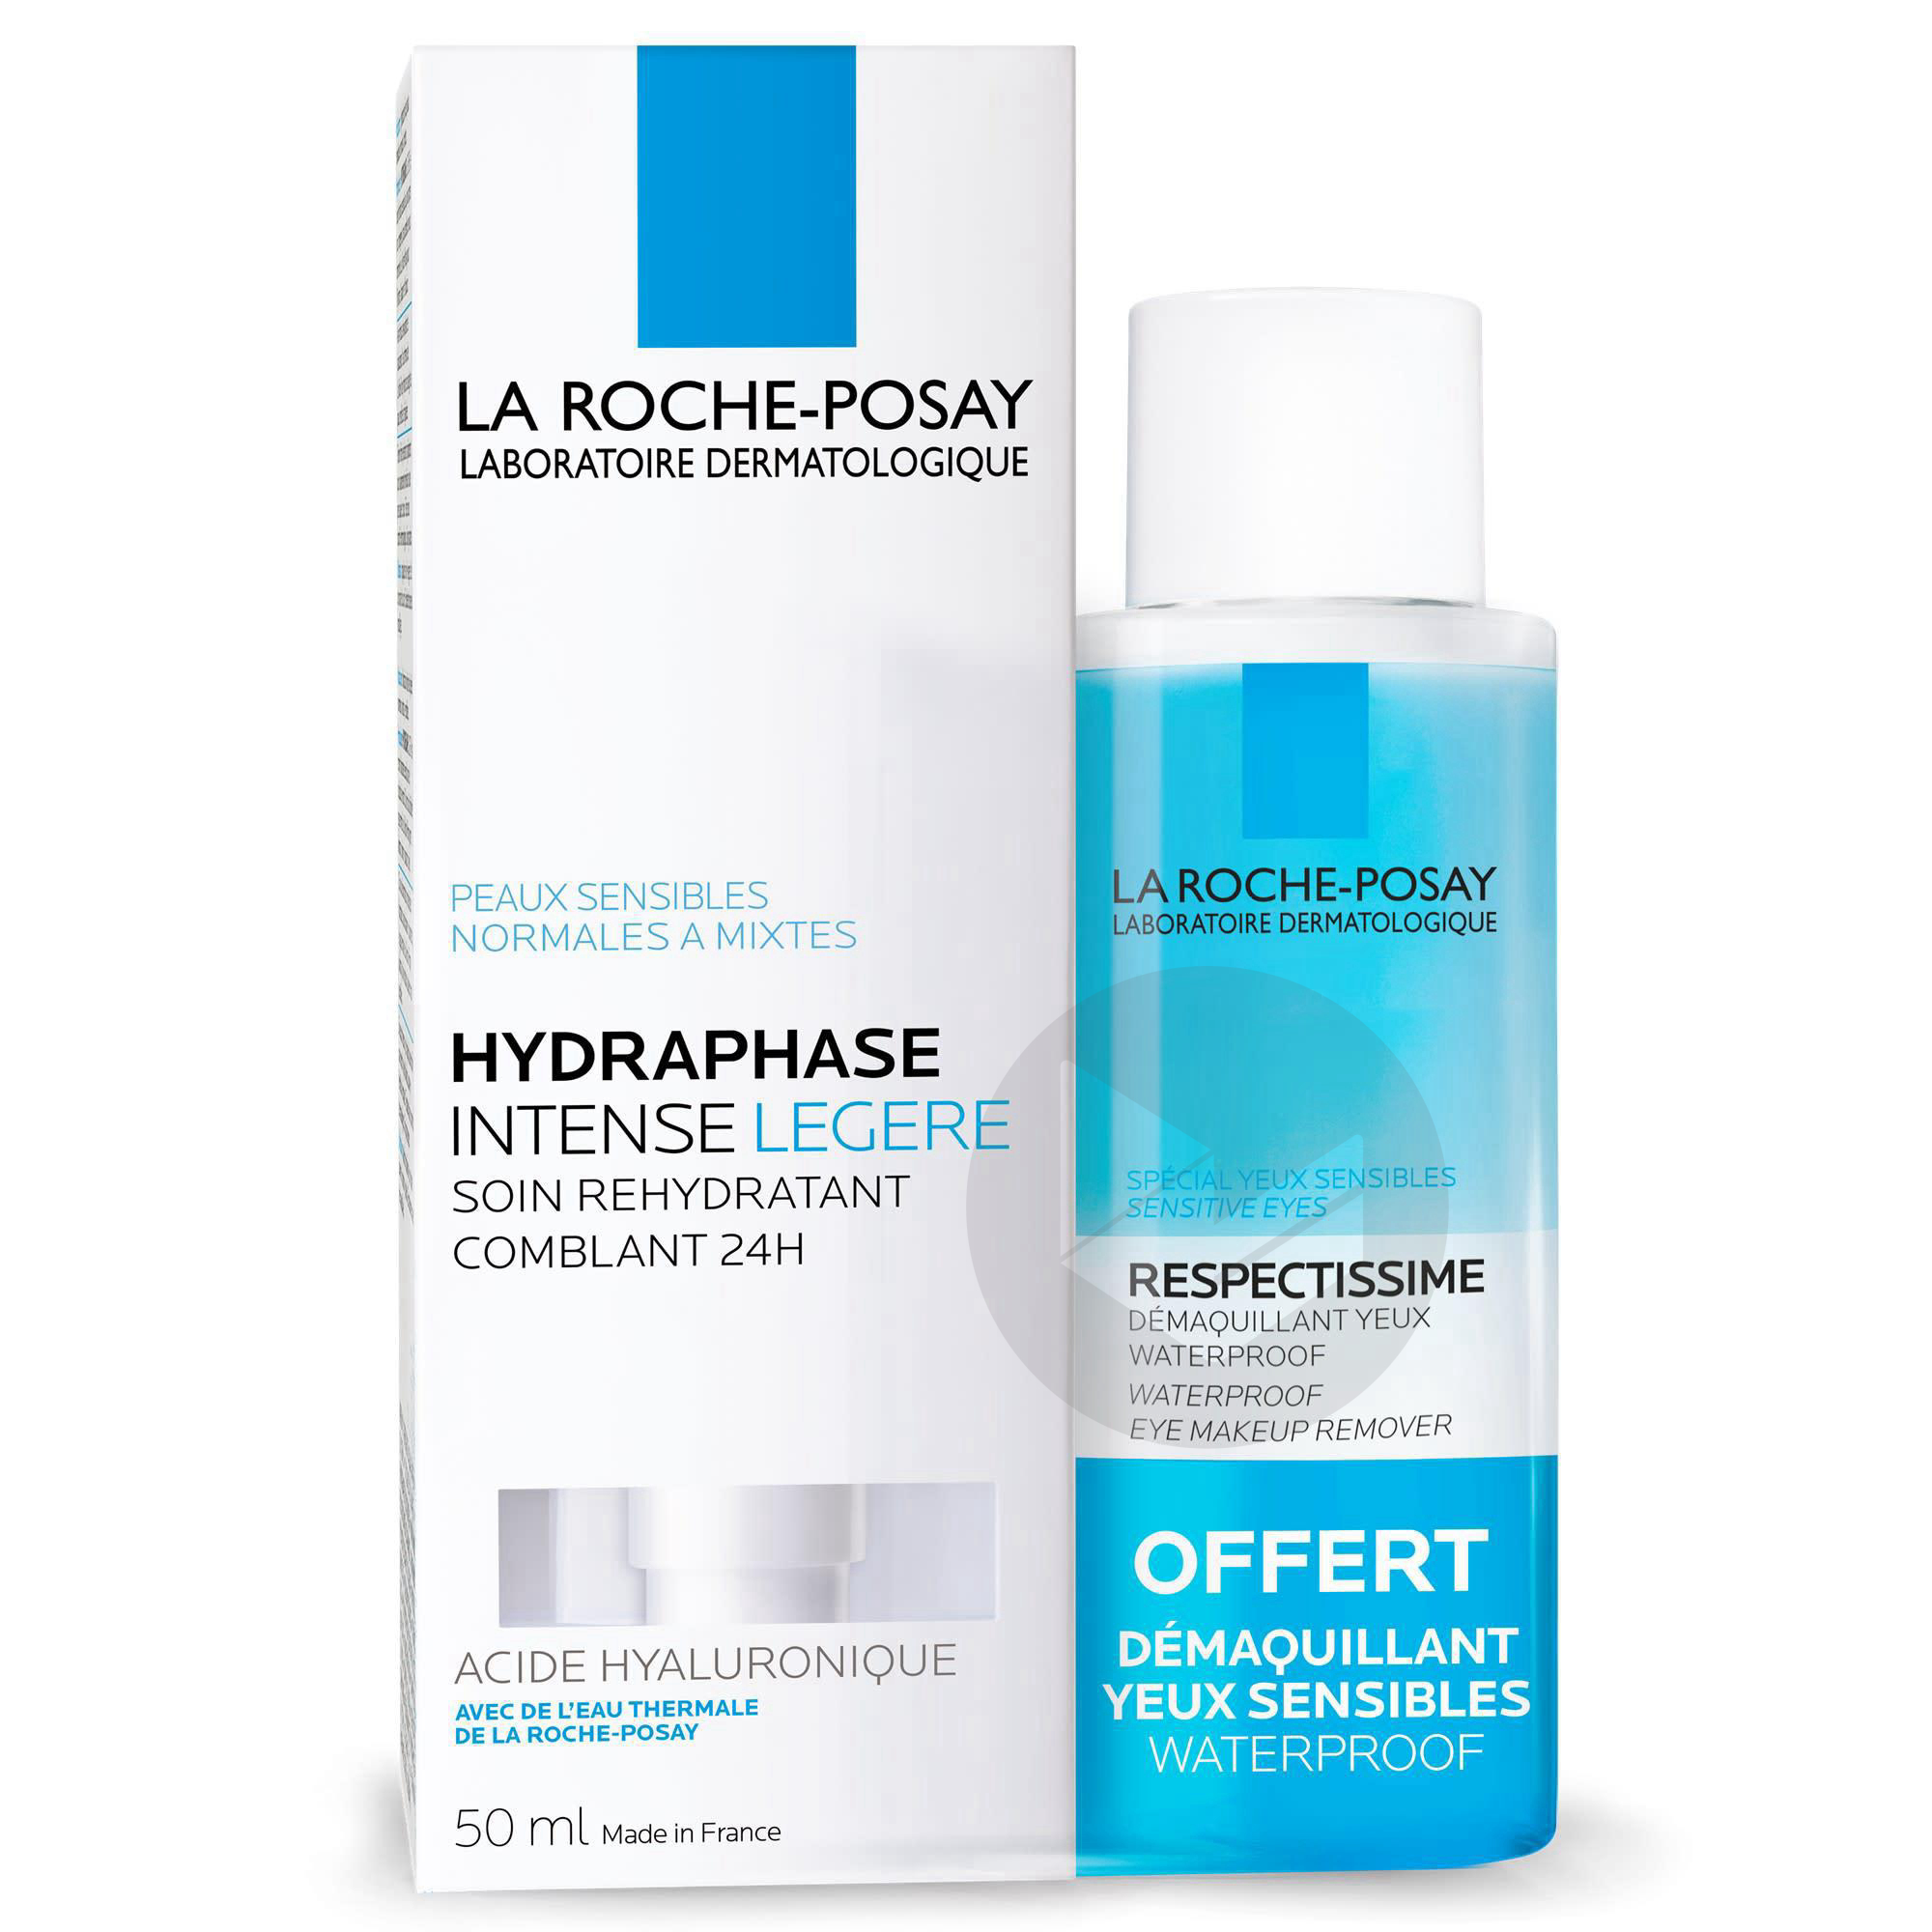 Hydraphase Intense Legere Respectissime Demaquillant Yeux Waterproof 50 Ml Offert